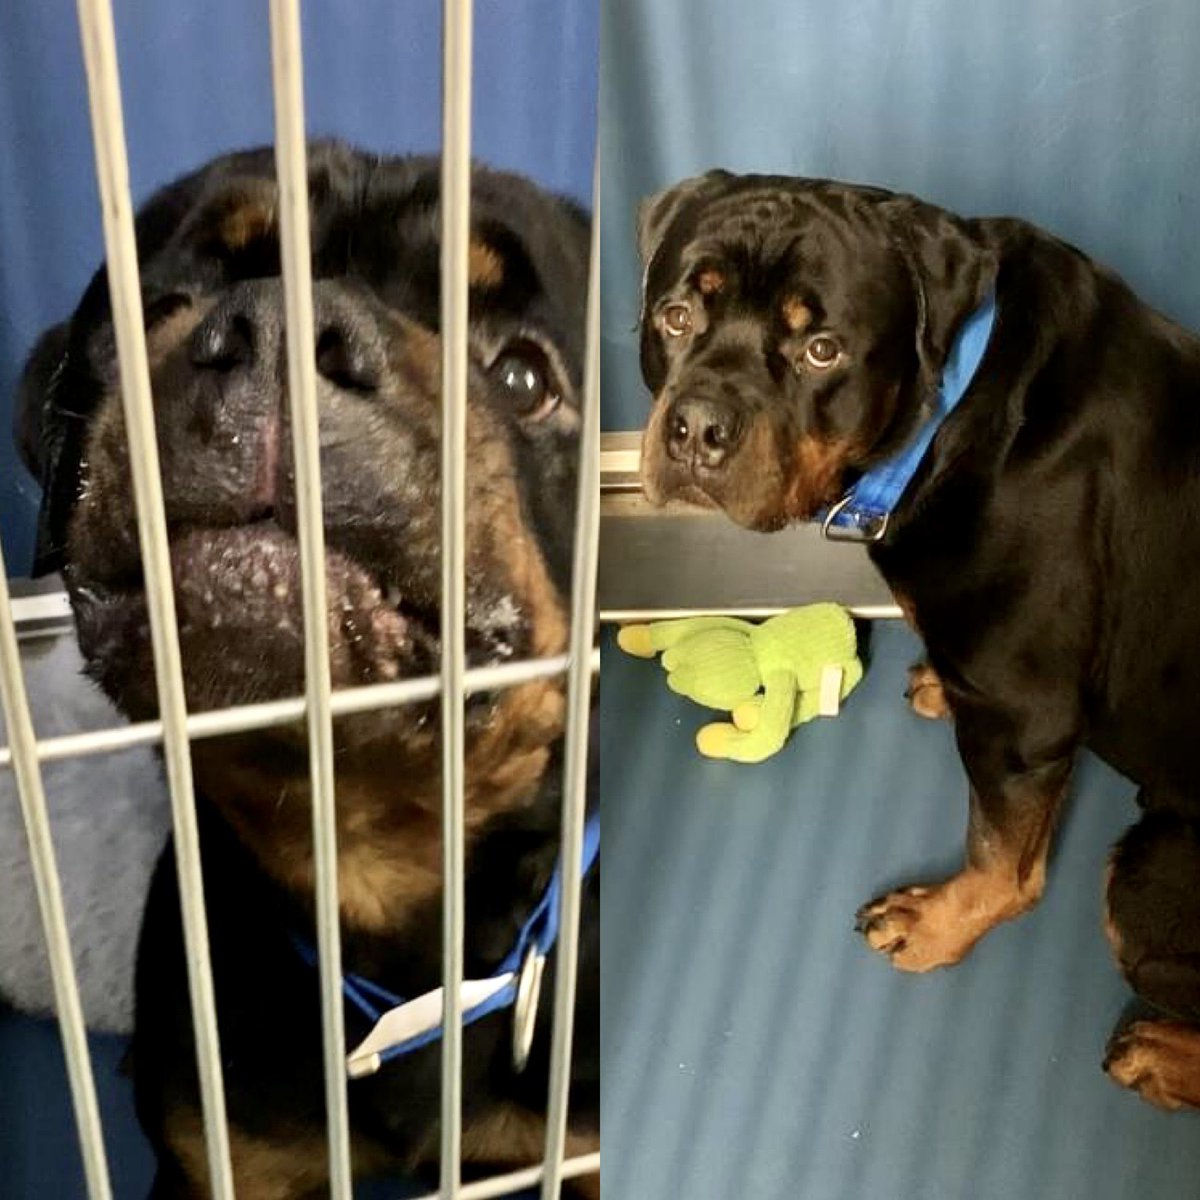 IN JUST 10 DAYS 'PUPPY' #113625 LOST HIS FAMILY. NOW HE COULD LOSE HIS LIFE TUESDAY. His human died; the relatives couldn't be bothered. They left this 1-year old @nycacc where they're rushing to kill him. Pledges via @TomJumboGrumbo and PLEASE RT PUPPY! https://t.co/WtwtuOu9G3 https://t.co/yRJ4Dz7Pbk